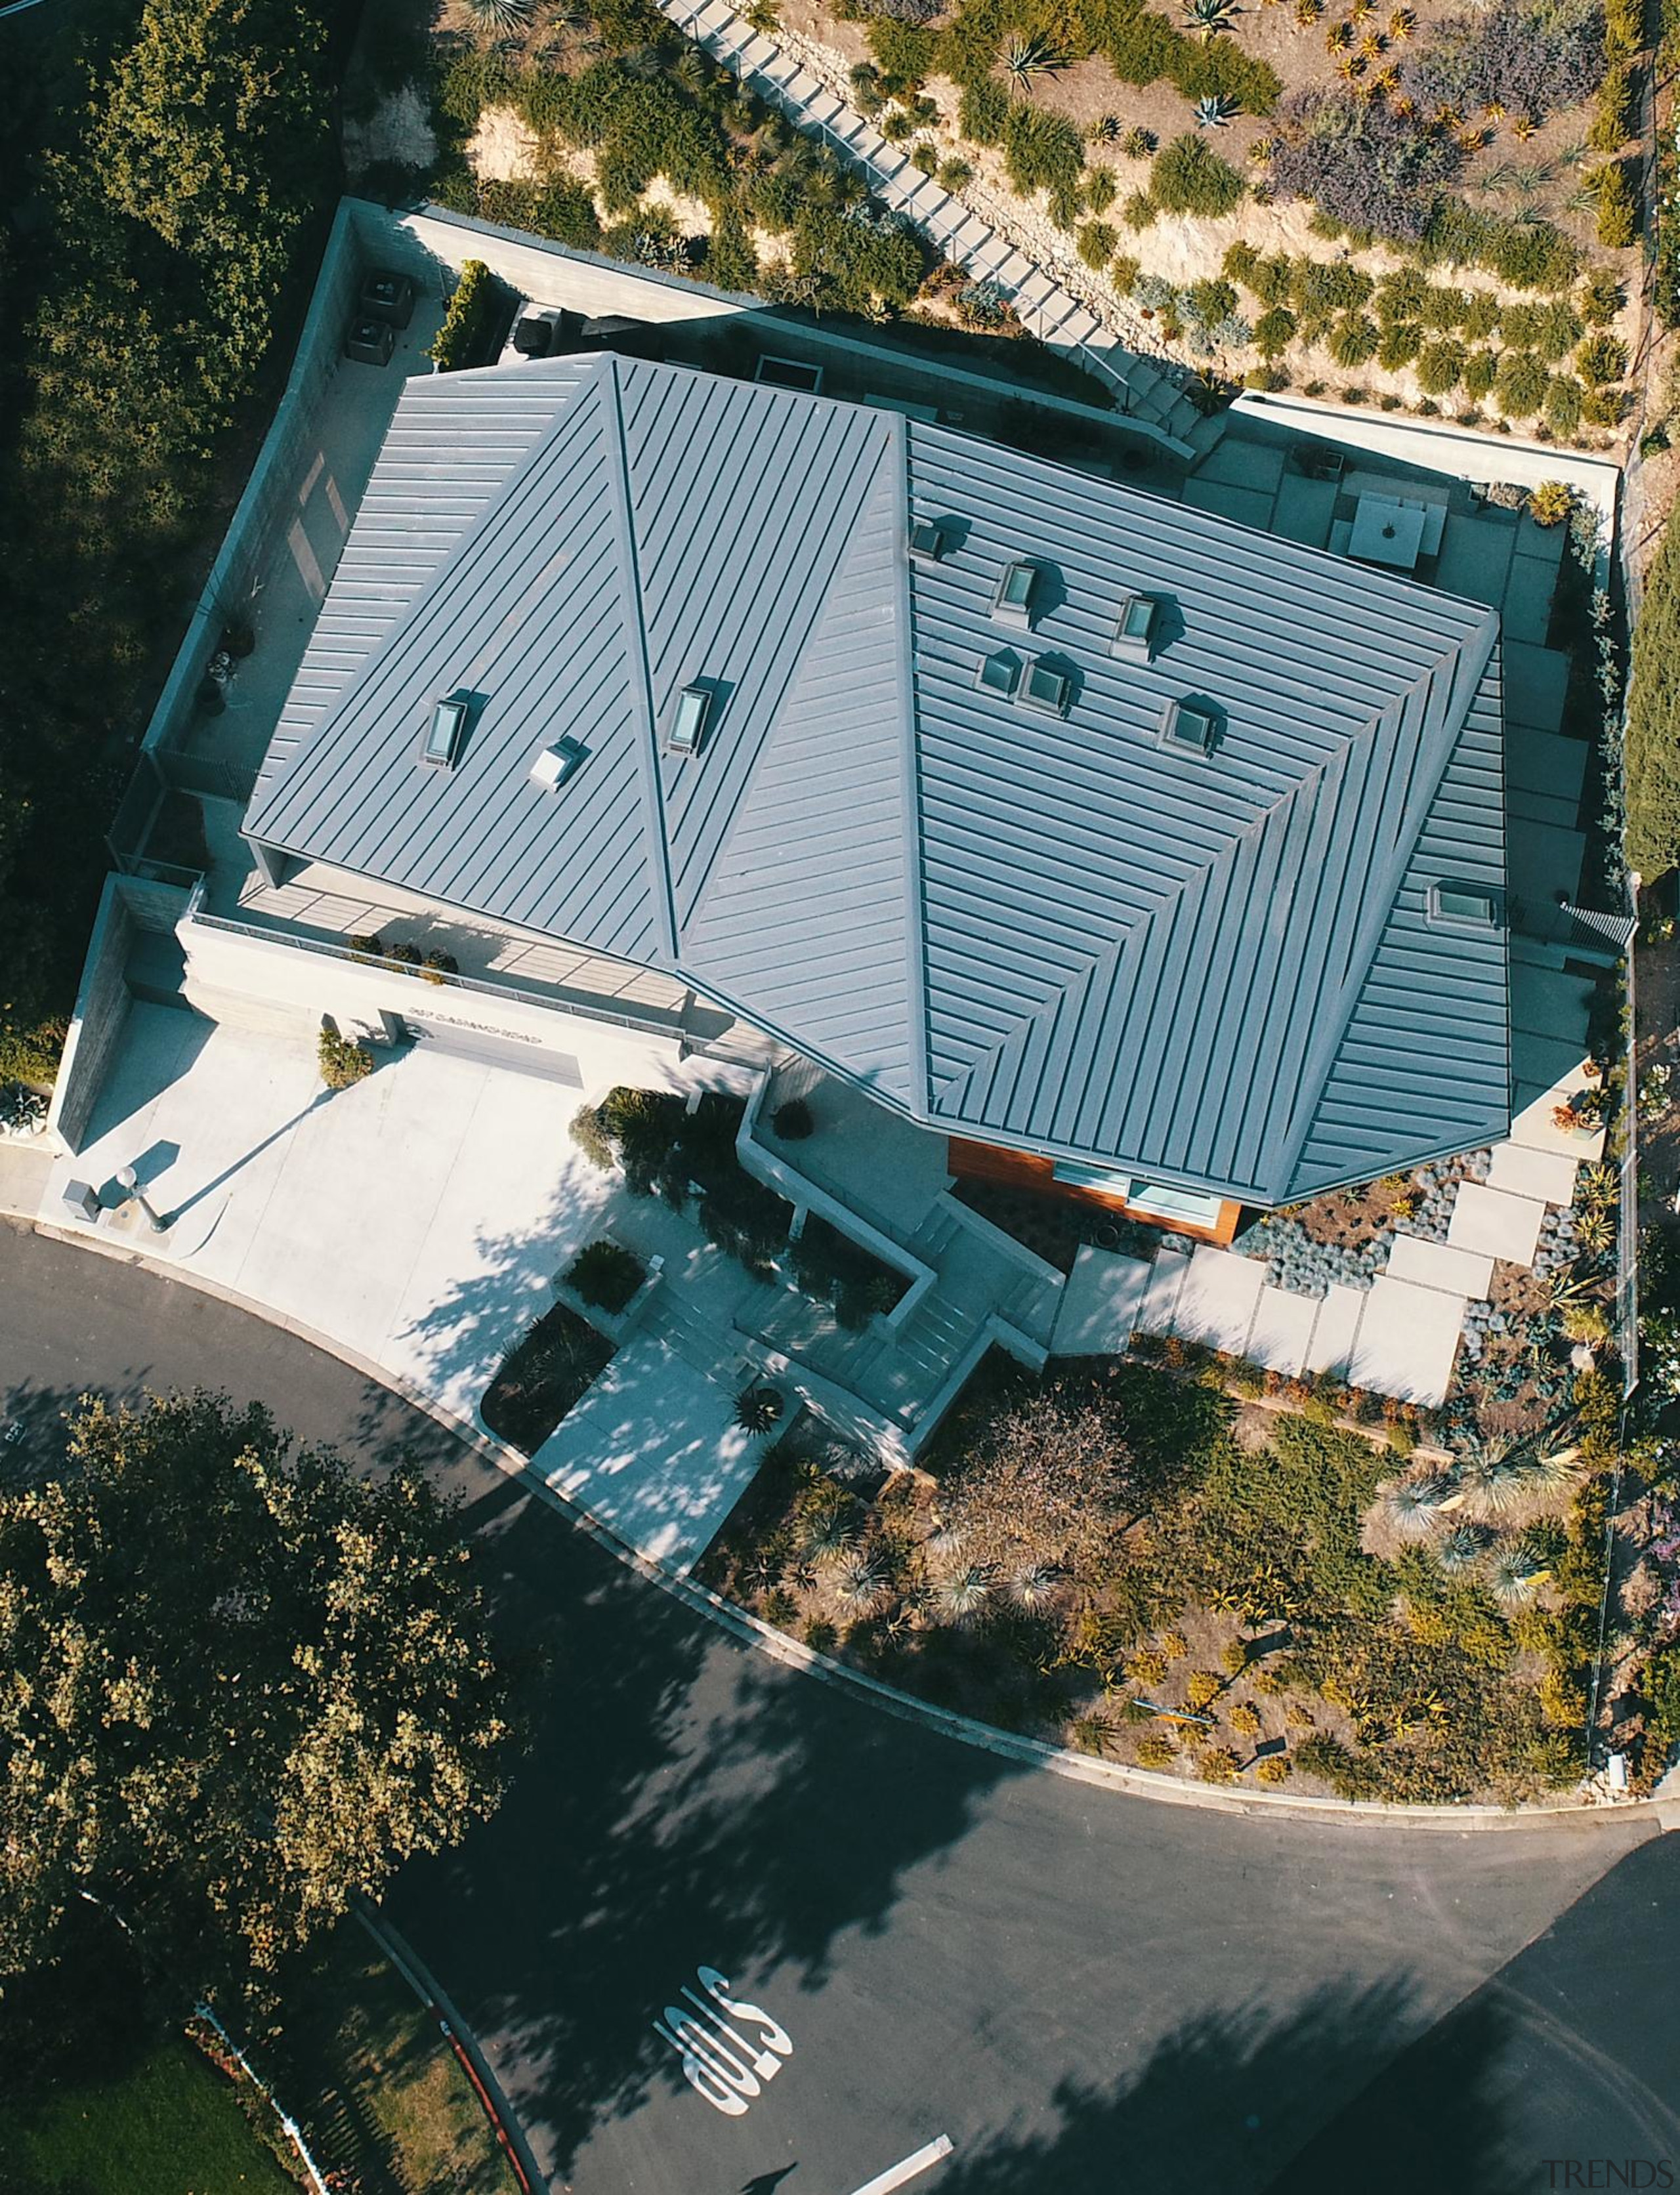 Anx View 61 - aerial photography | architecture aerial photography, architecture, building, house, photography, property, residential area, roof, tree, water, black